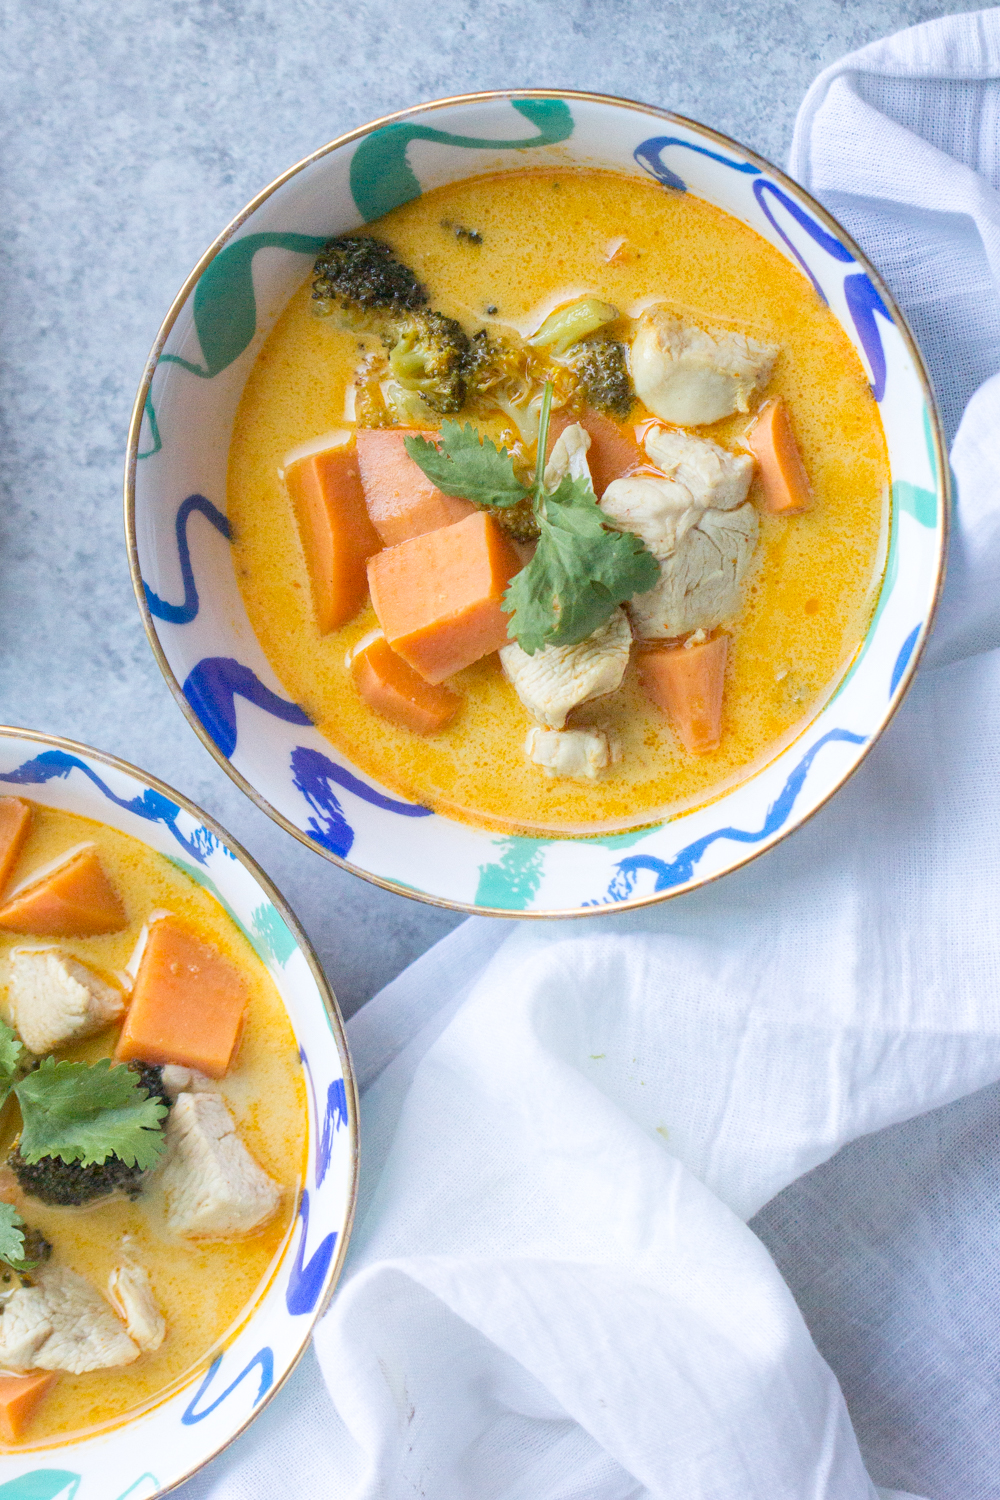 Sweet Potato Thai Curry Soup. Thai curry paste is a great condiment to keep in your pantry or refrigerator. Just a spoonful adds layers of flavor-sweet, salty, tangy, spicy-to a dish.